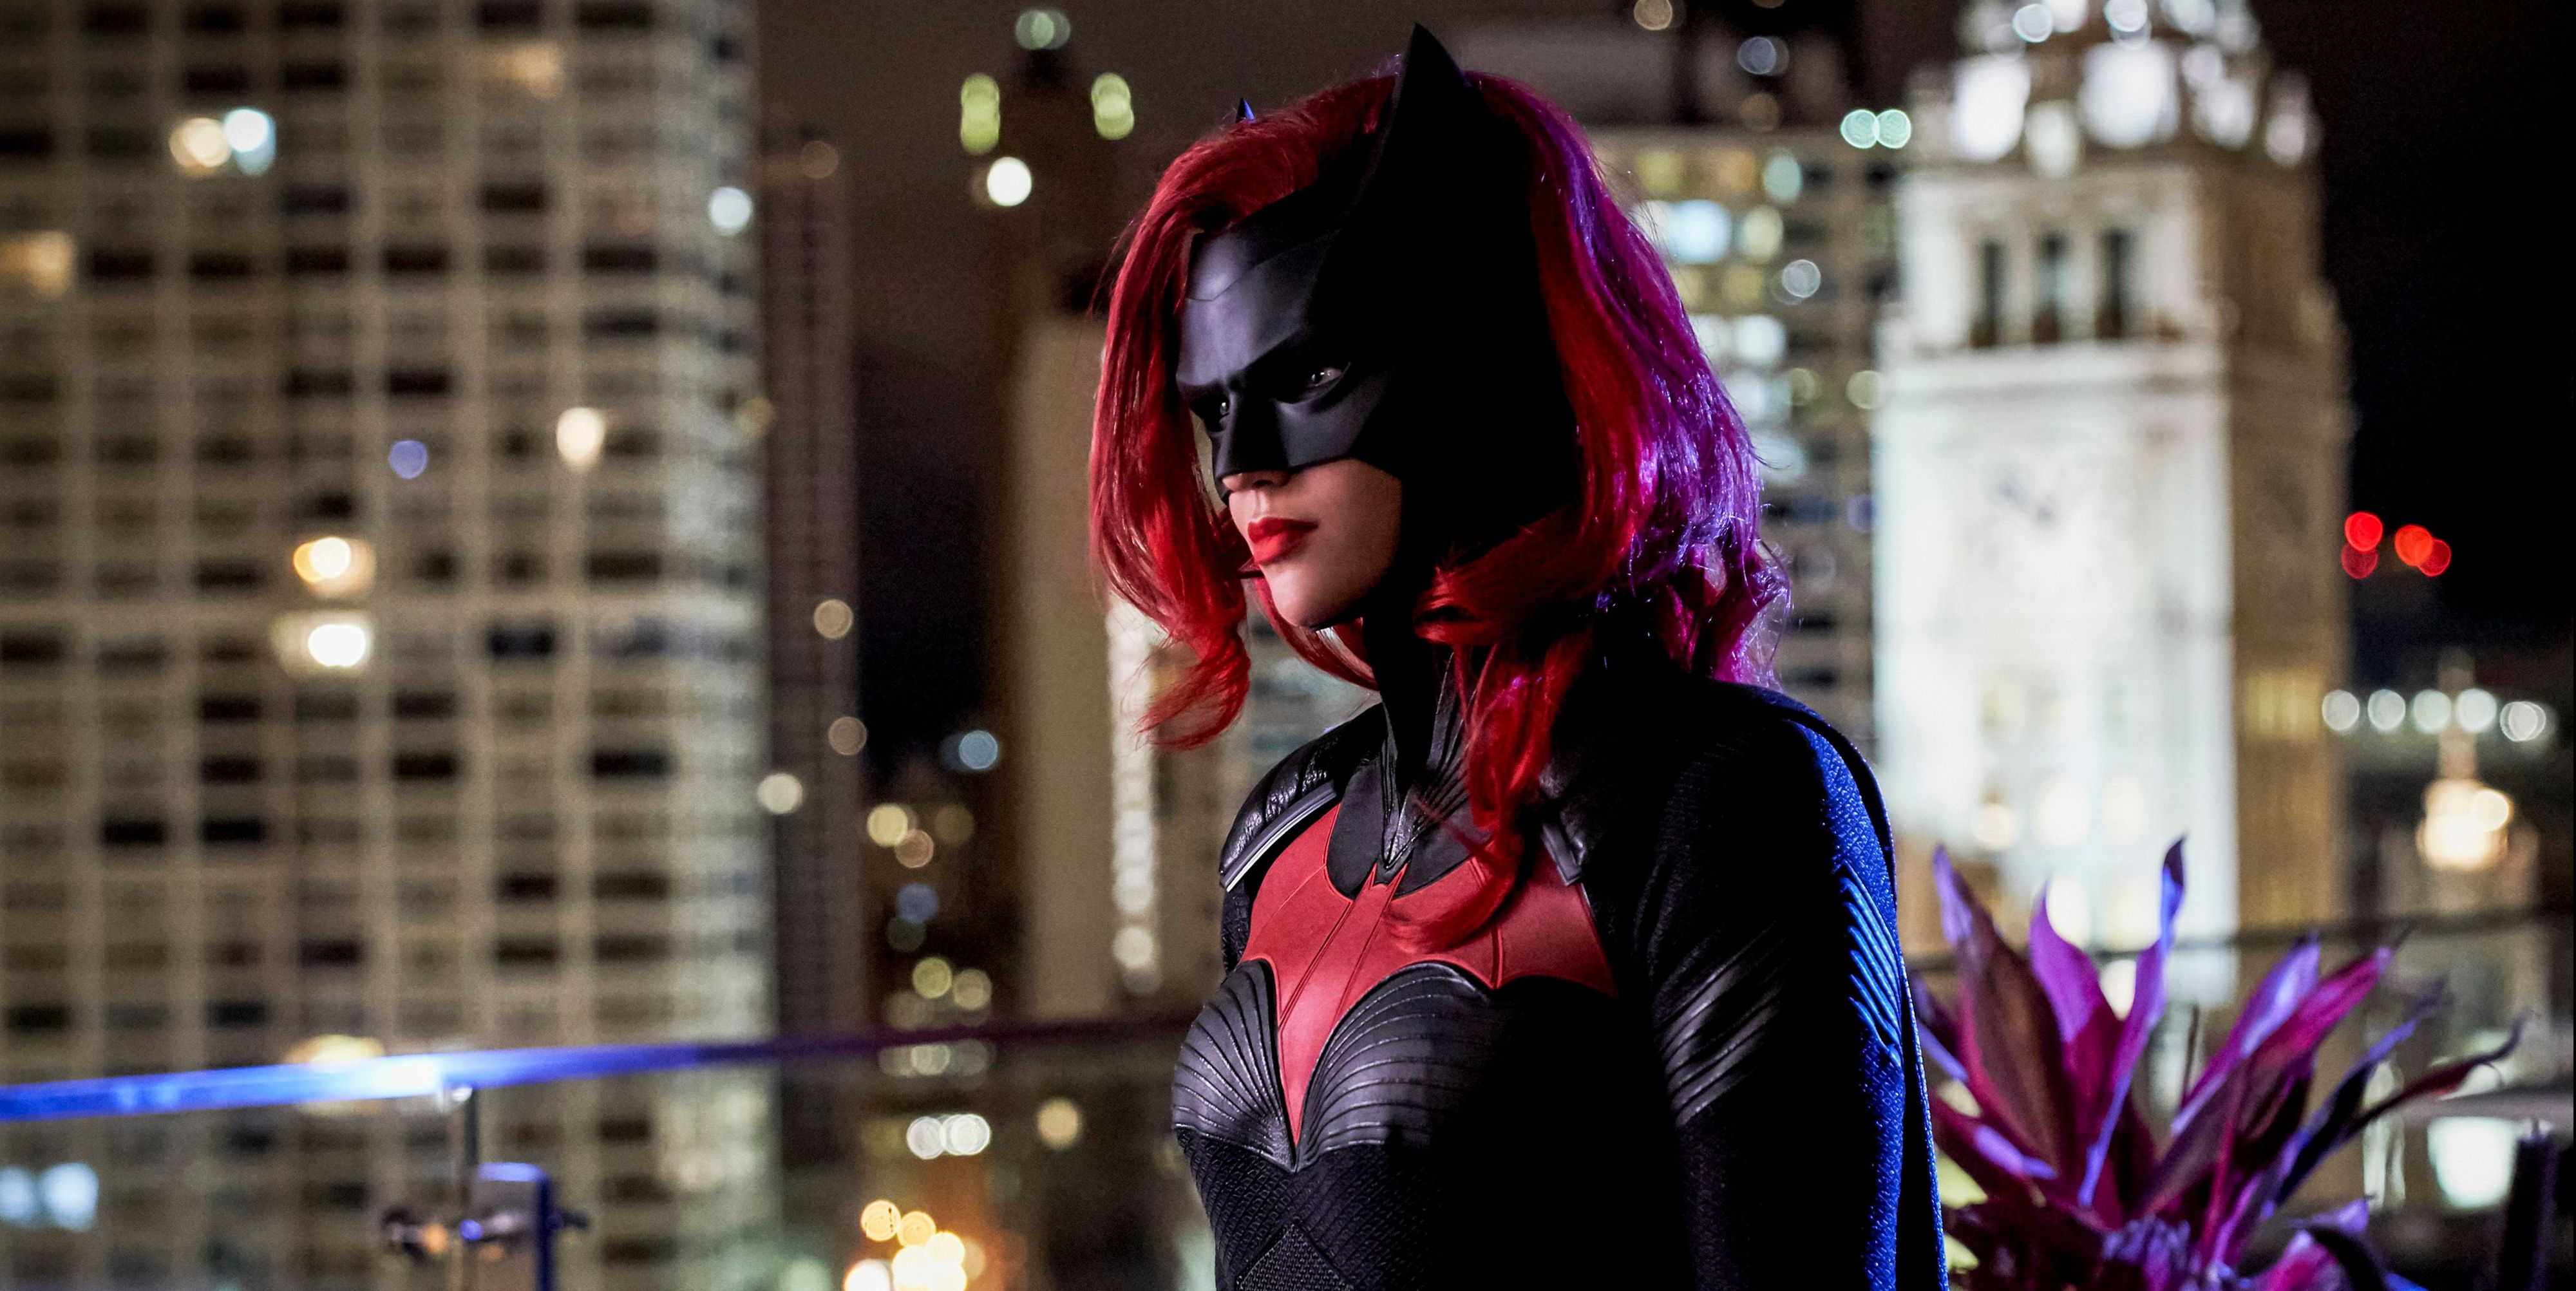 Batwoman / Kathy Kane, played by Ruby Rose - on The CW